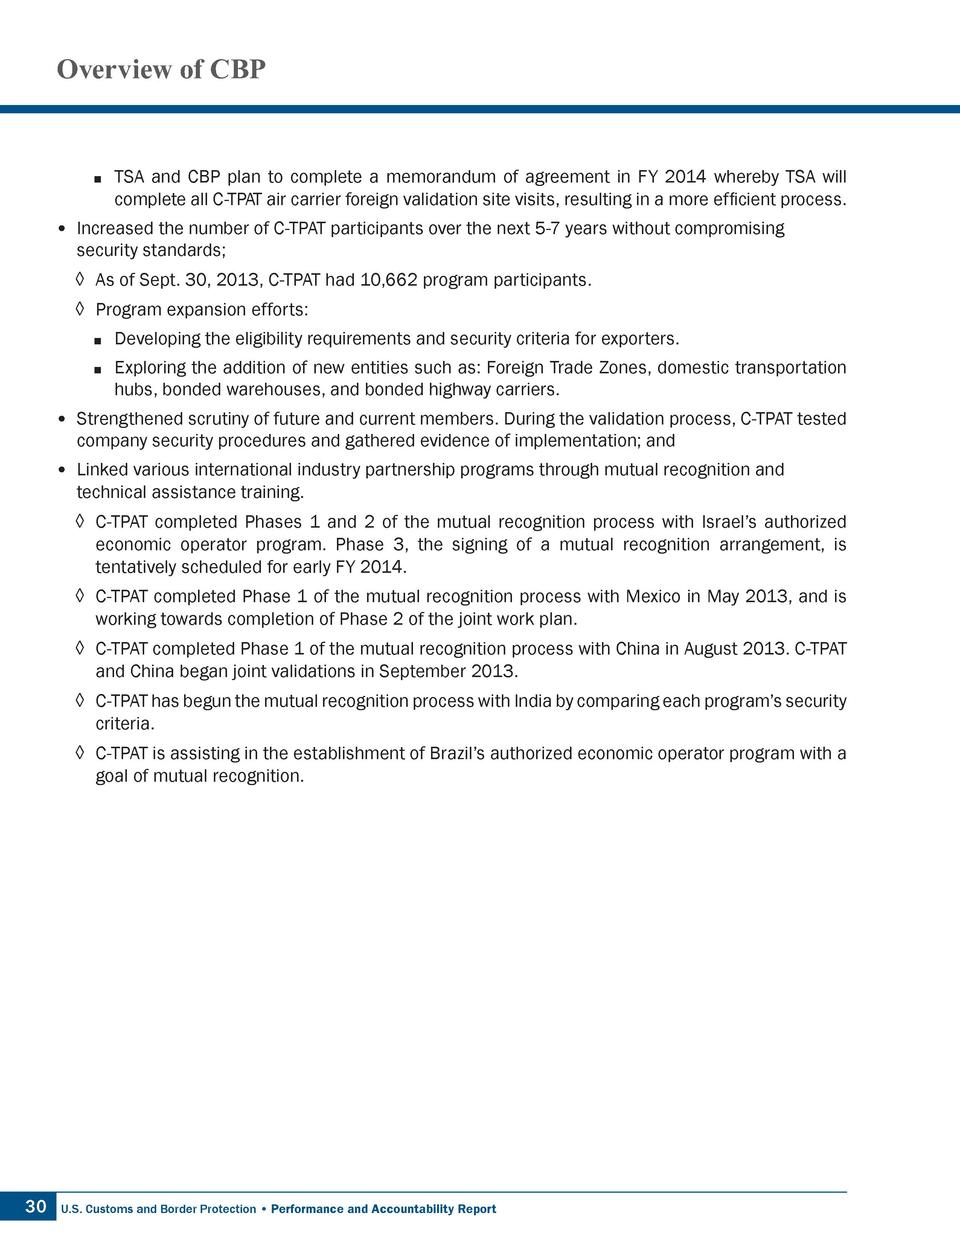 Overview of CBP          TSA and CBP plan to complete a memorandum of agreement in FY 2014 whereby TSA will complete all C...